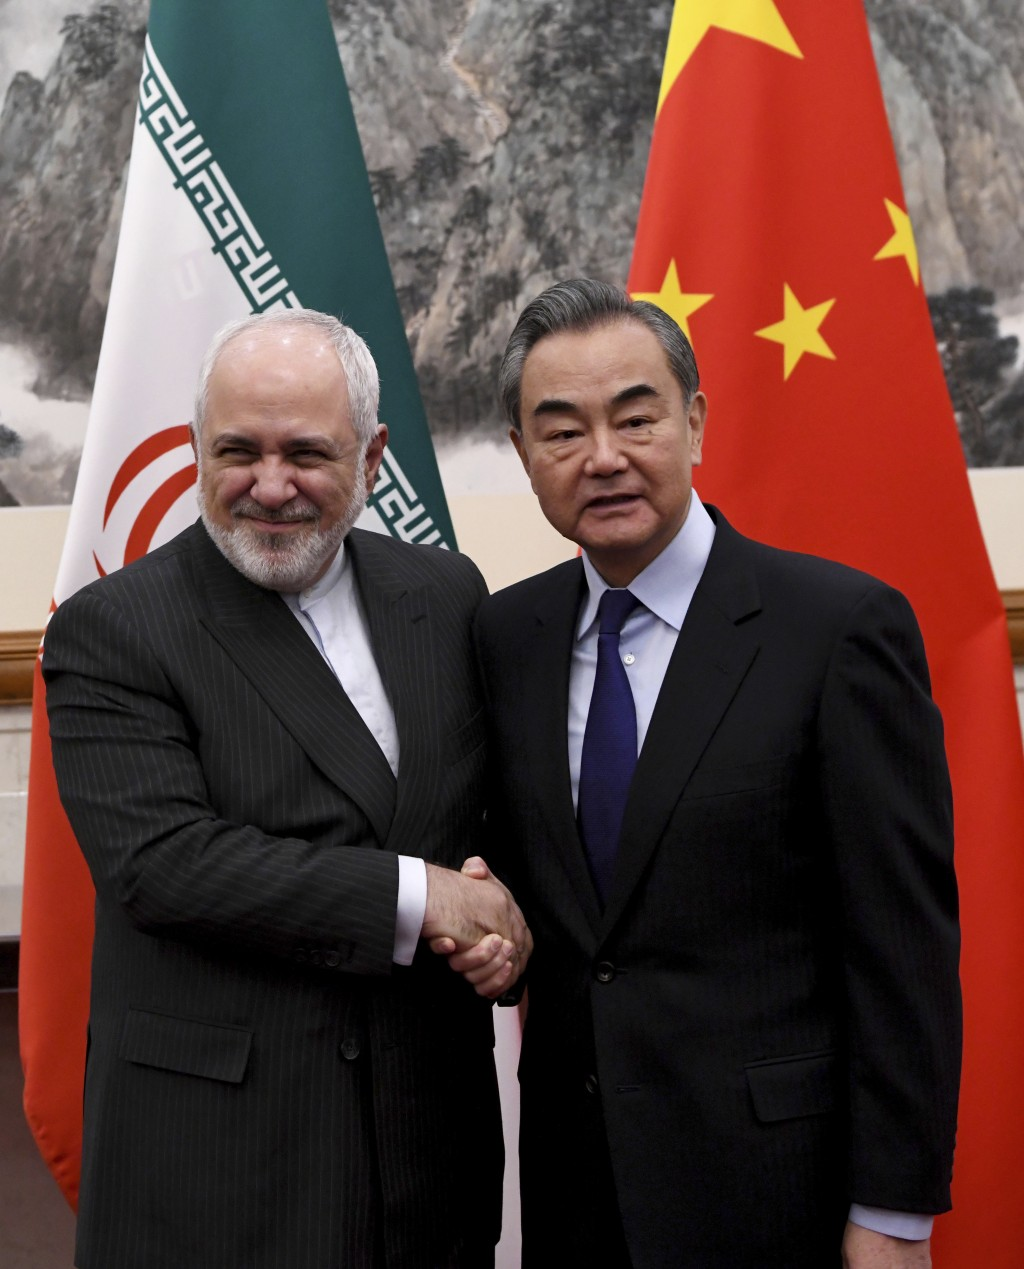 China's Foreign Minister Wang Yi, right, shakes hands with Iran's Foreign Minister Mohammad Javad Zarif during a meeting at the Diaoyutai state guest ...